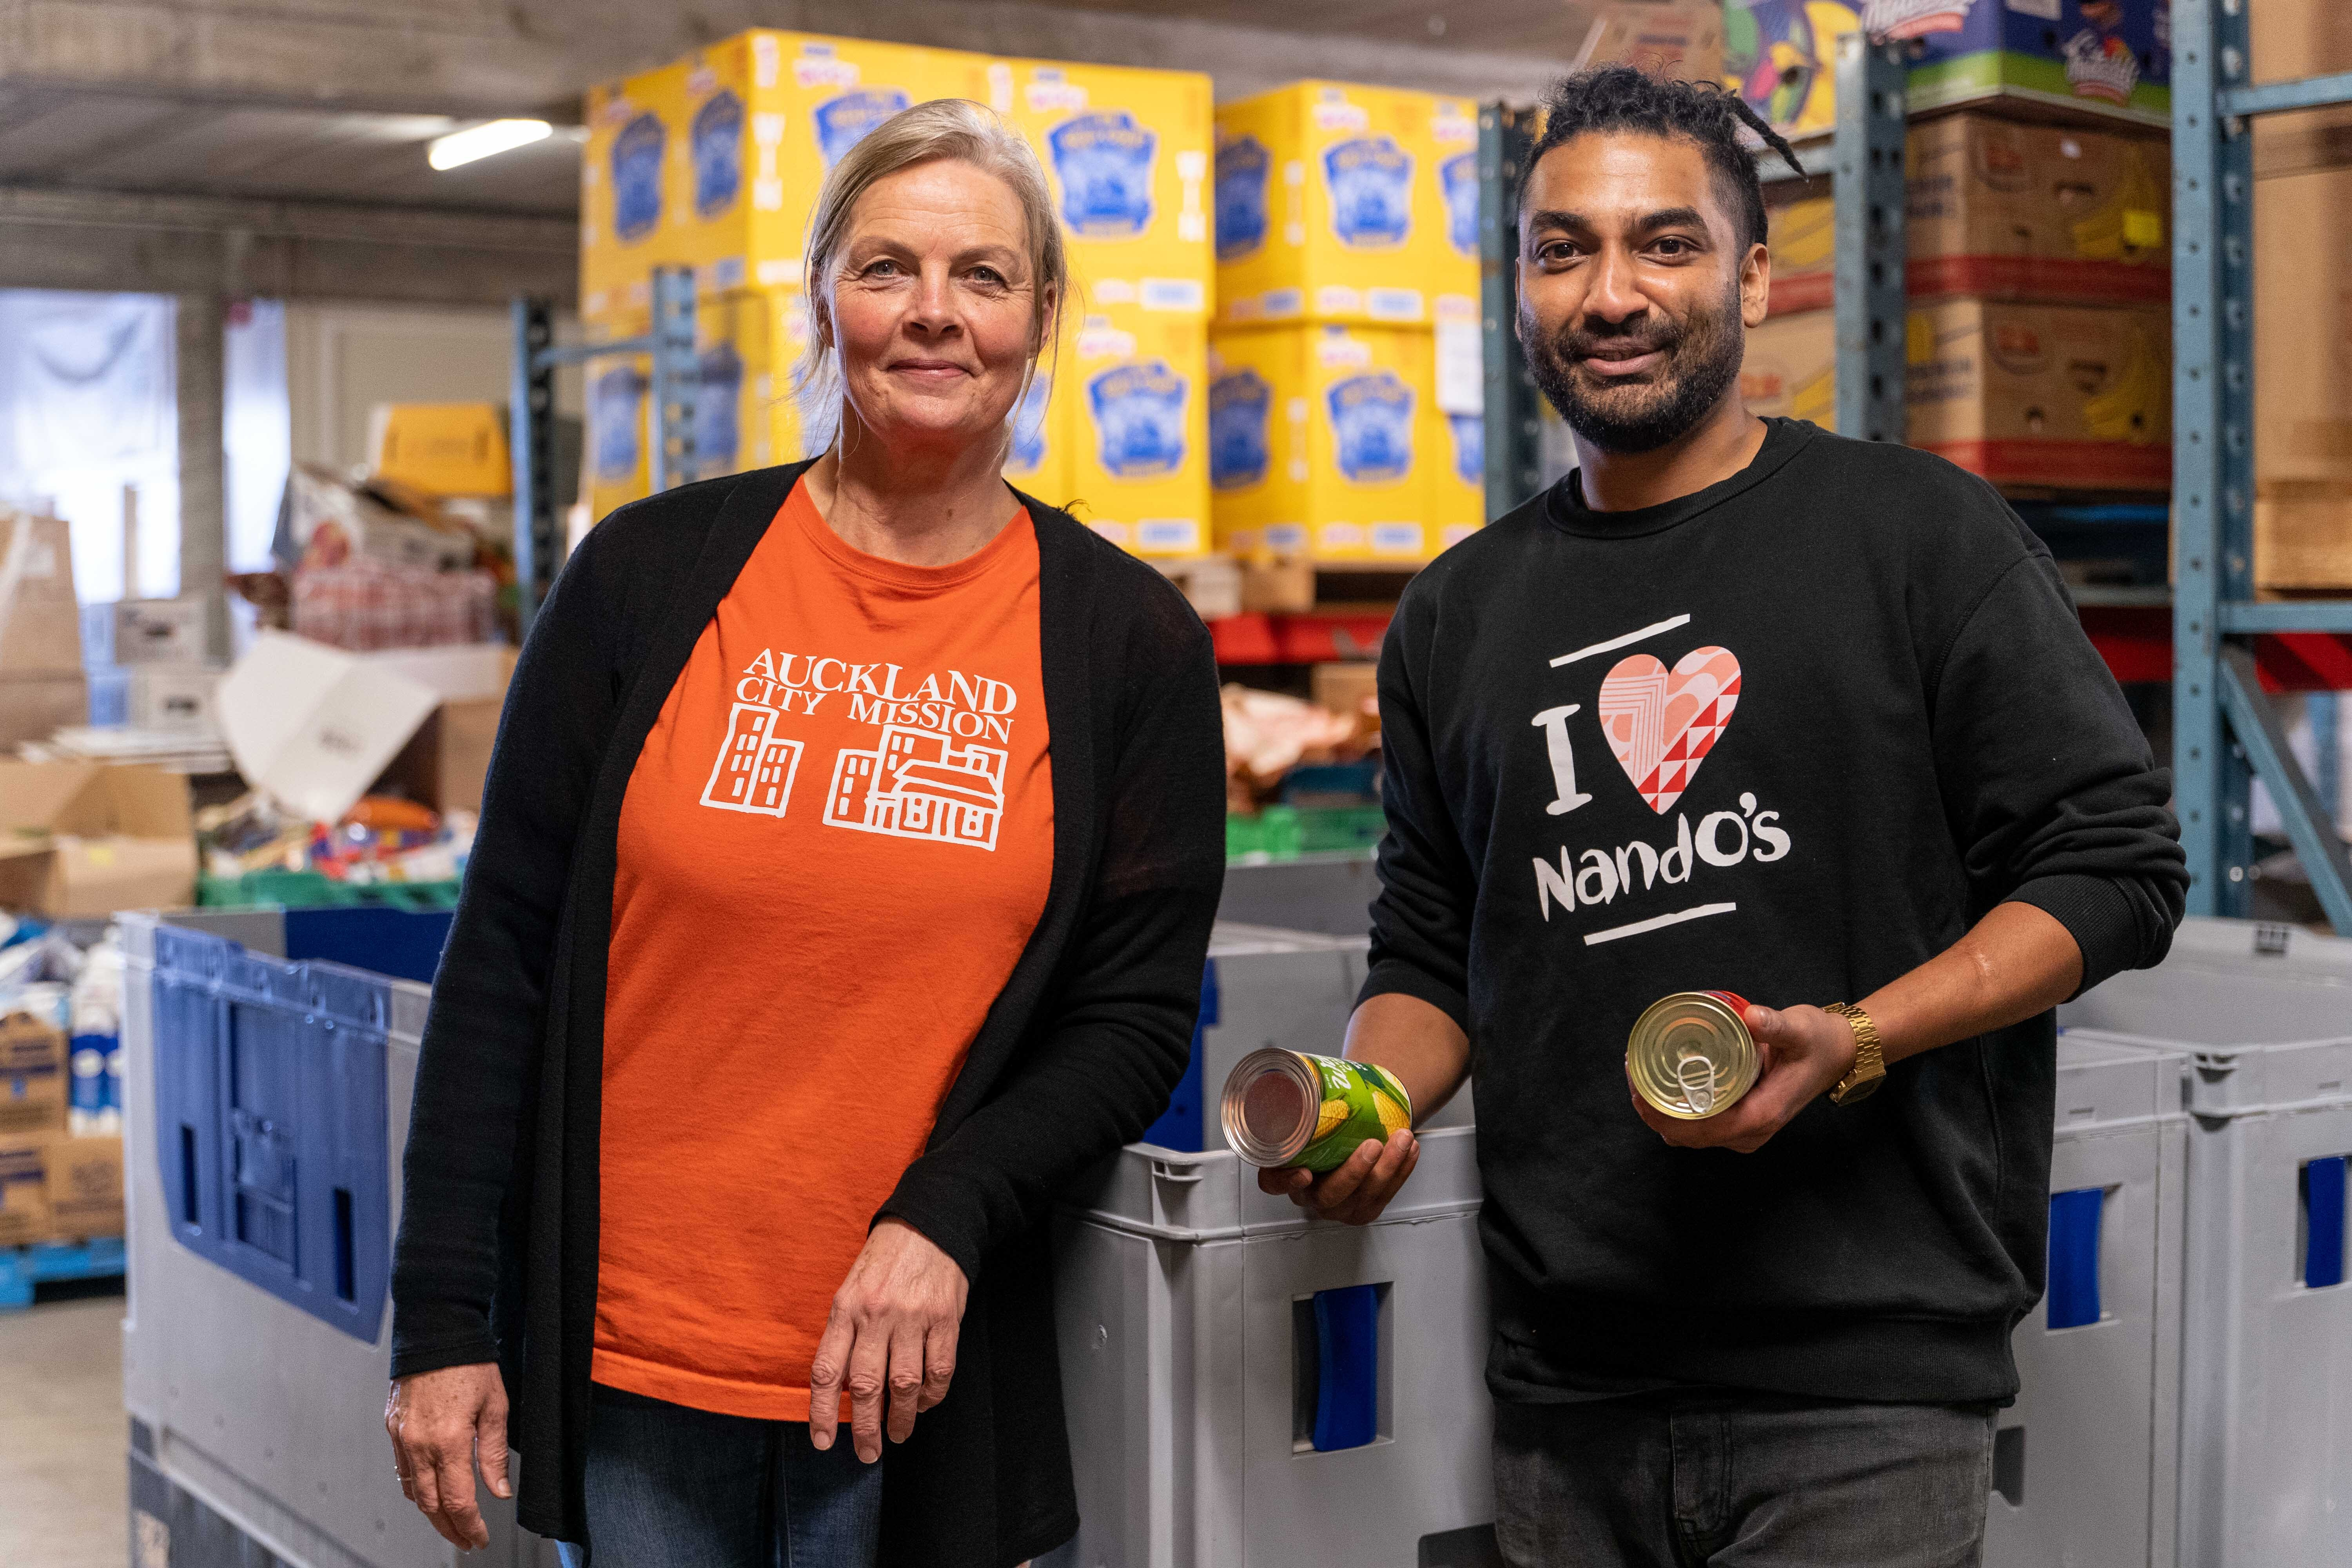 Auckland City Mission staff member and Nando's staff member at the Mission's distribution centre.